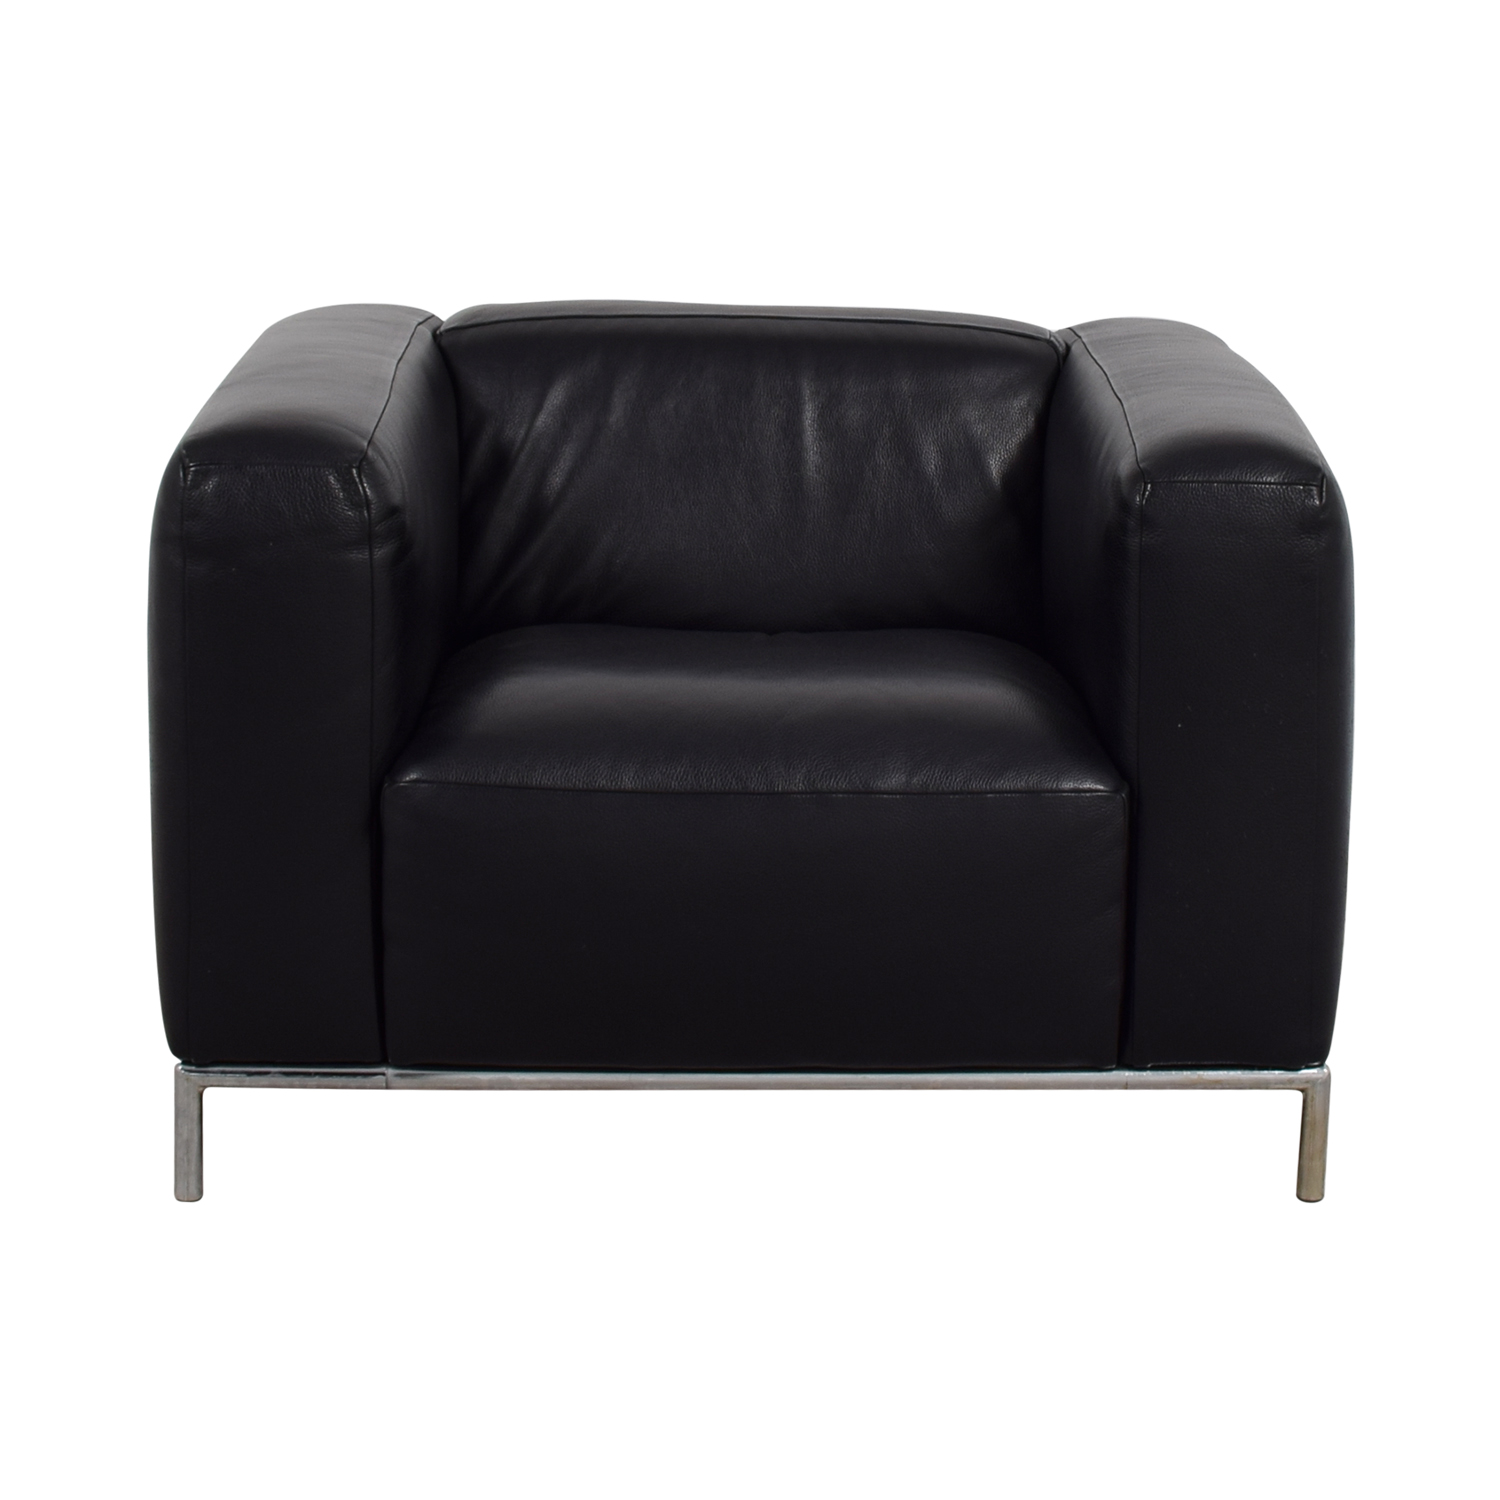 West Elm West Elm Black Leather Accent Chair nj